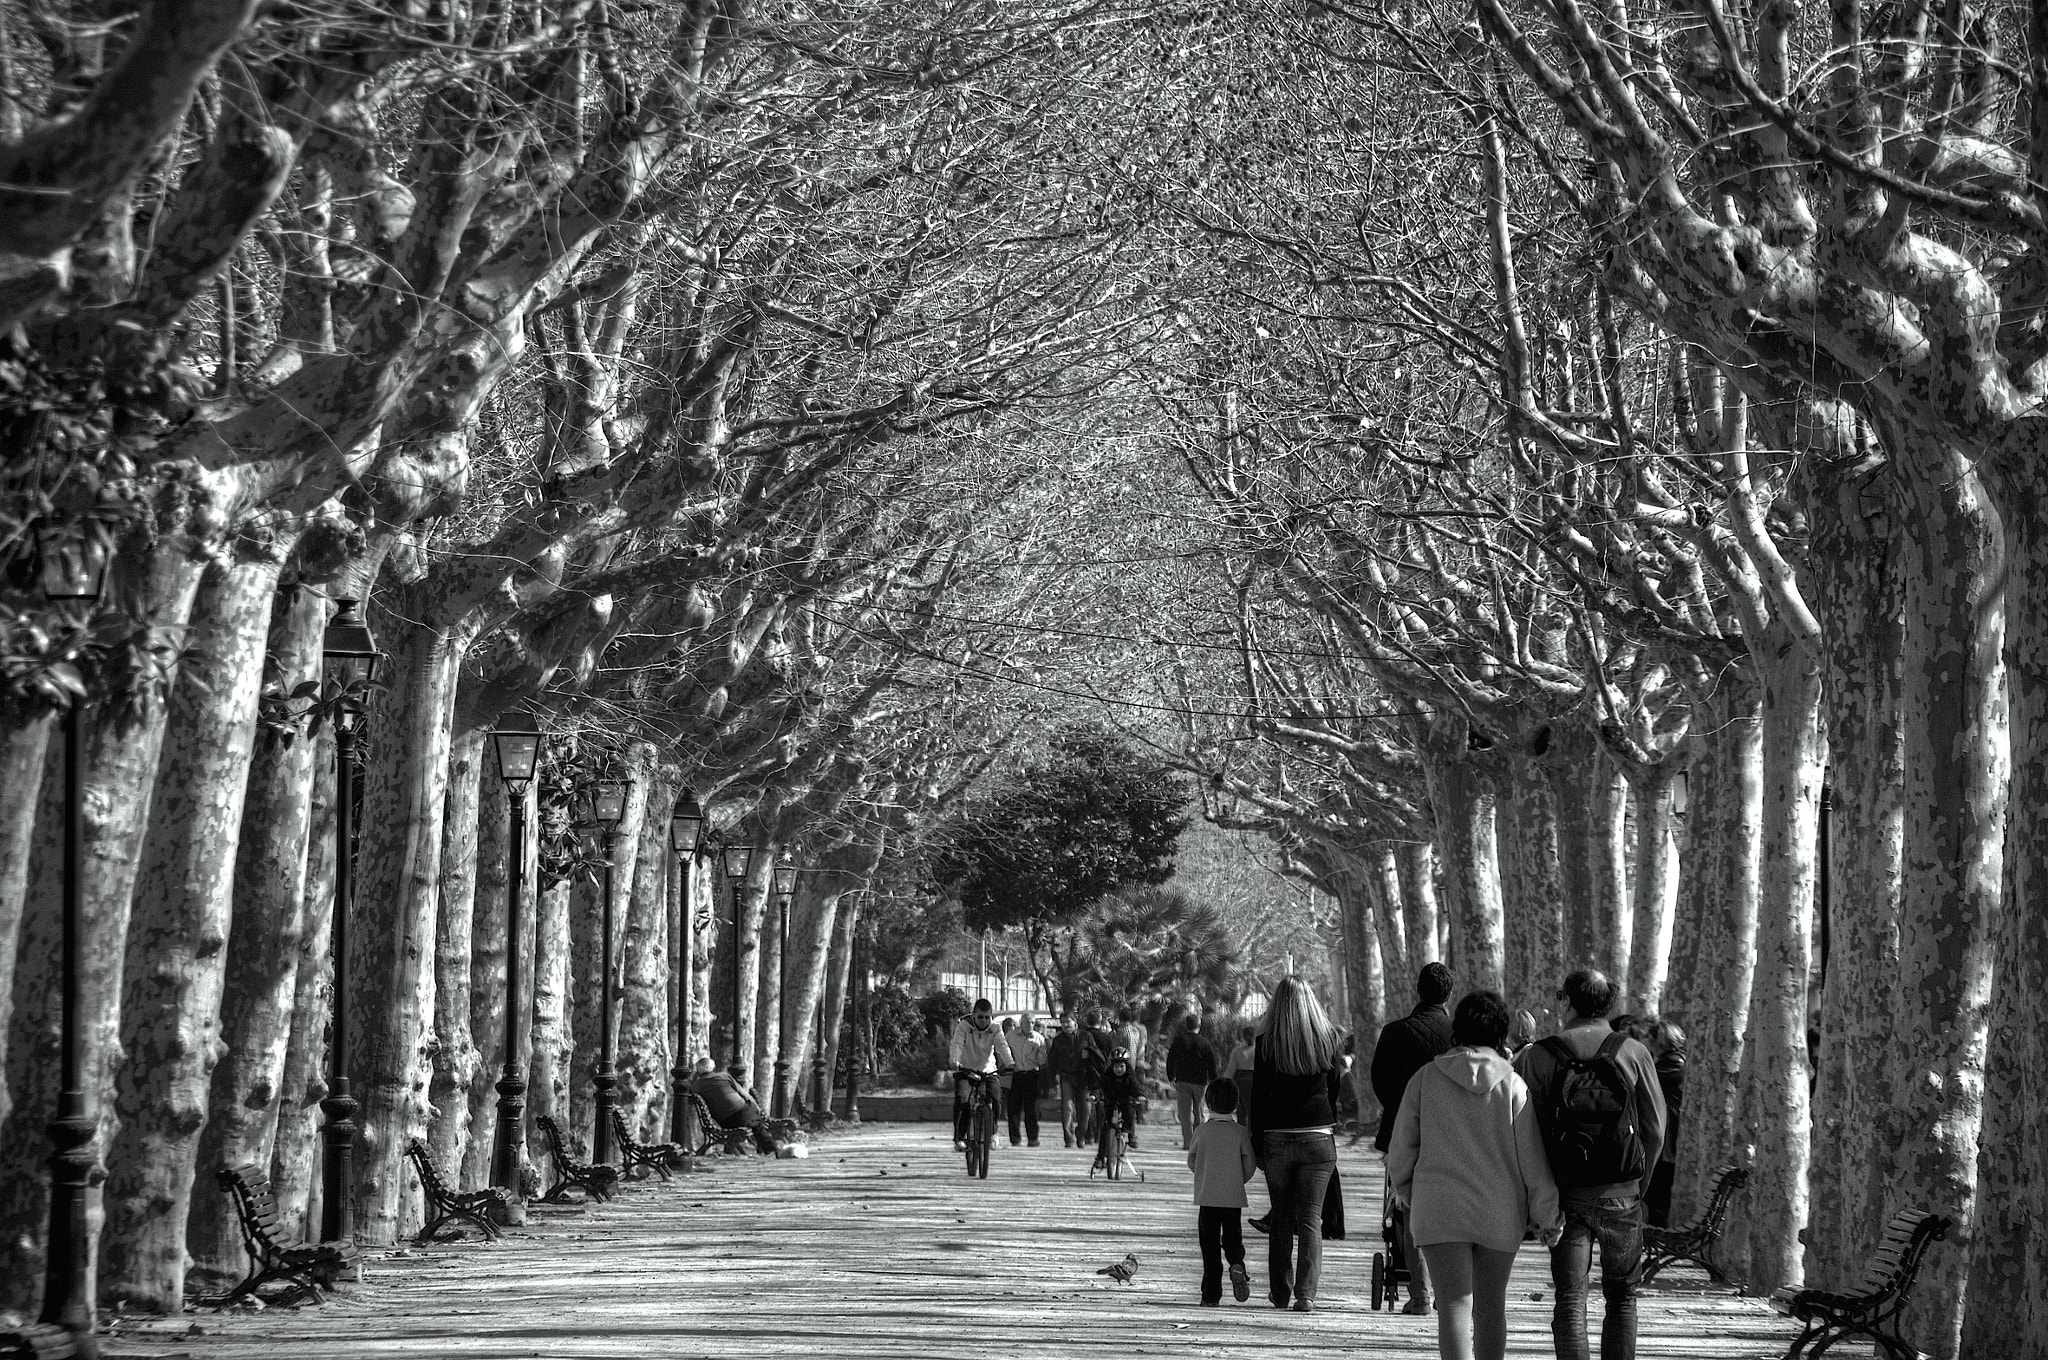 Photograph Paseo by Josep Maria Colls Trullen on 500px